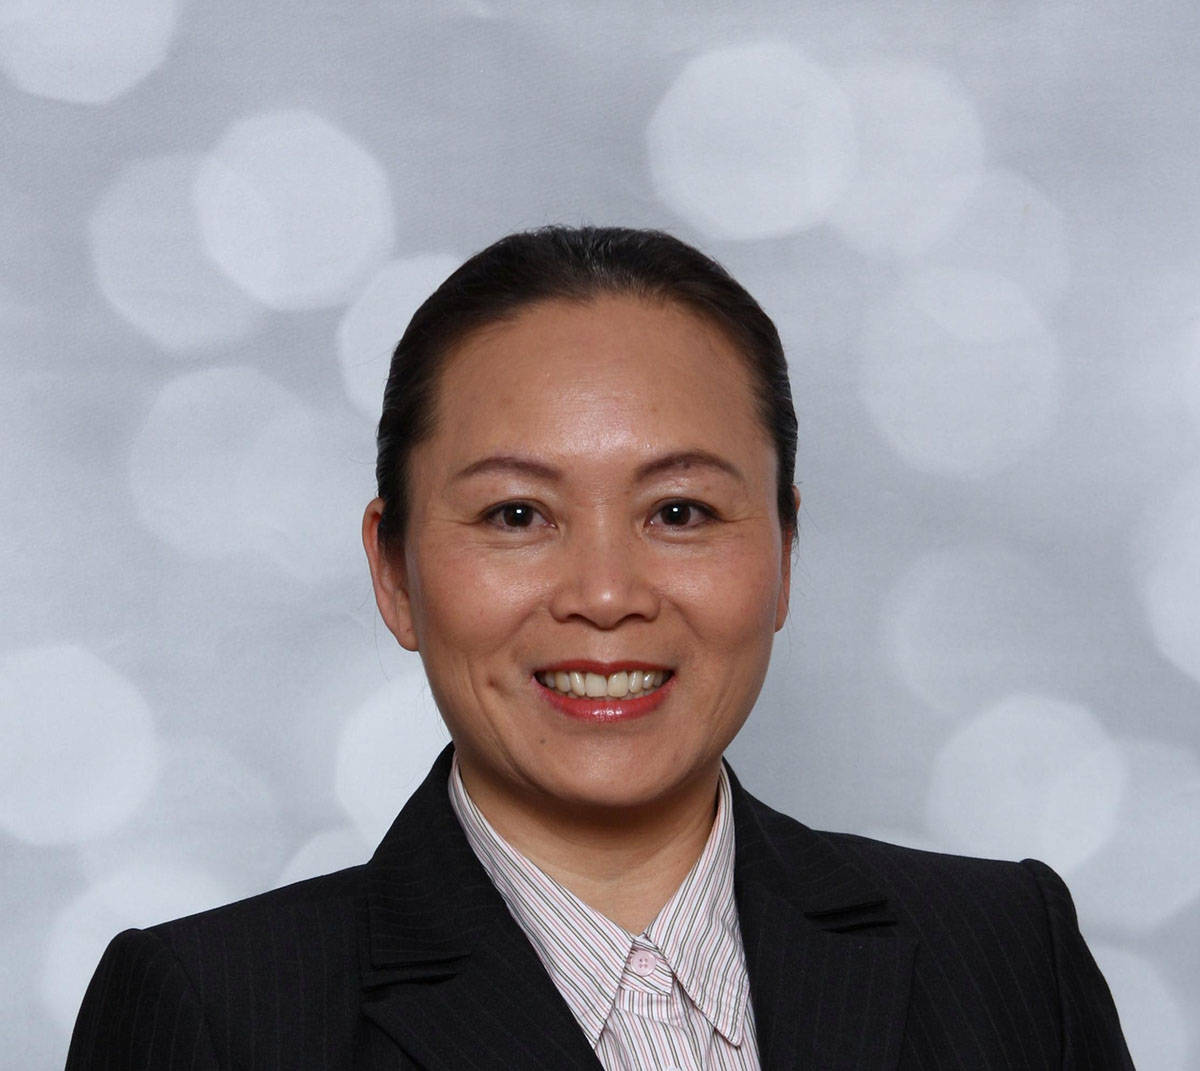 Jackie Leung is a chartered professional accountant, owner of SHL Leung & Co. Inc. and a volunteer on Langley Memorial Hospital Foundation's Legacy Giving Advisory Committee.